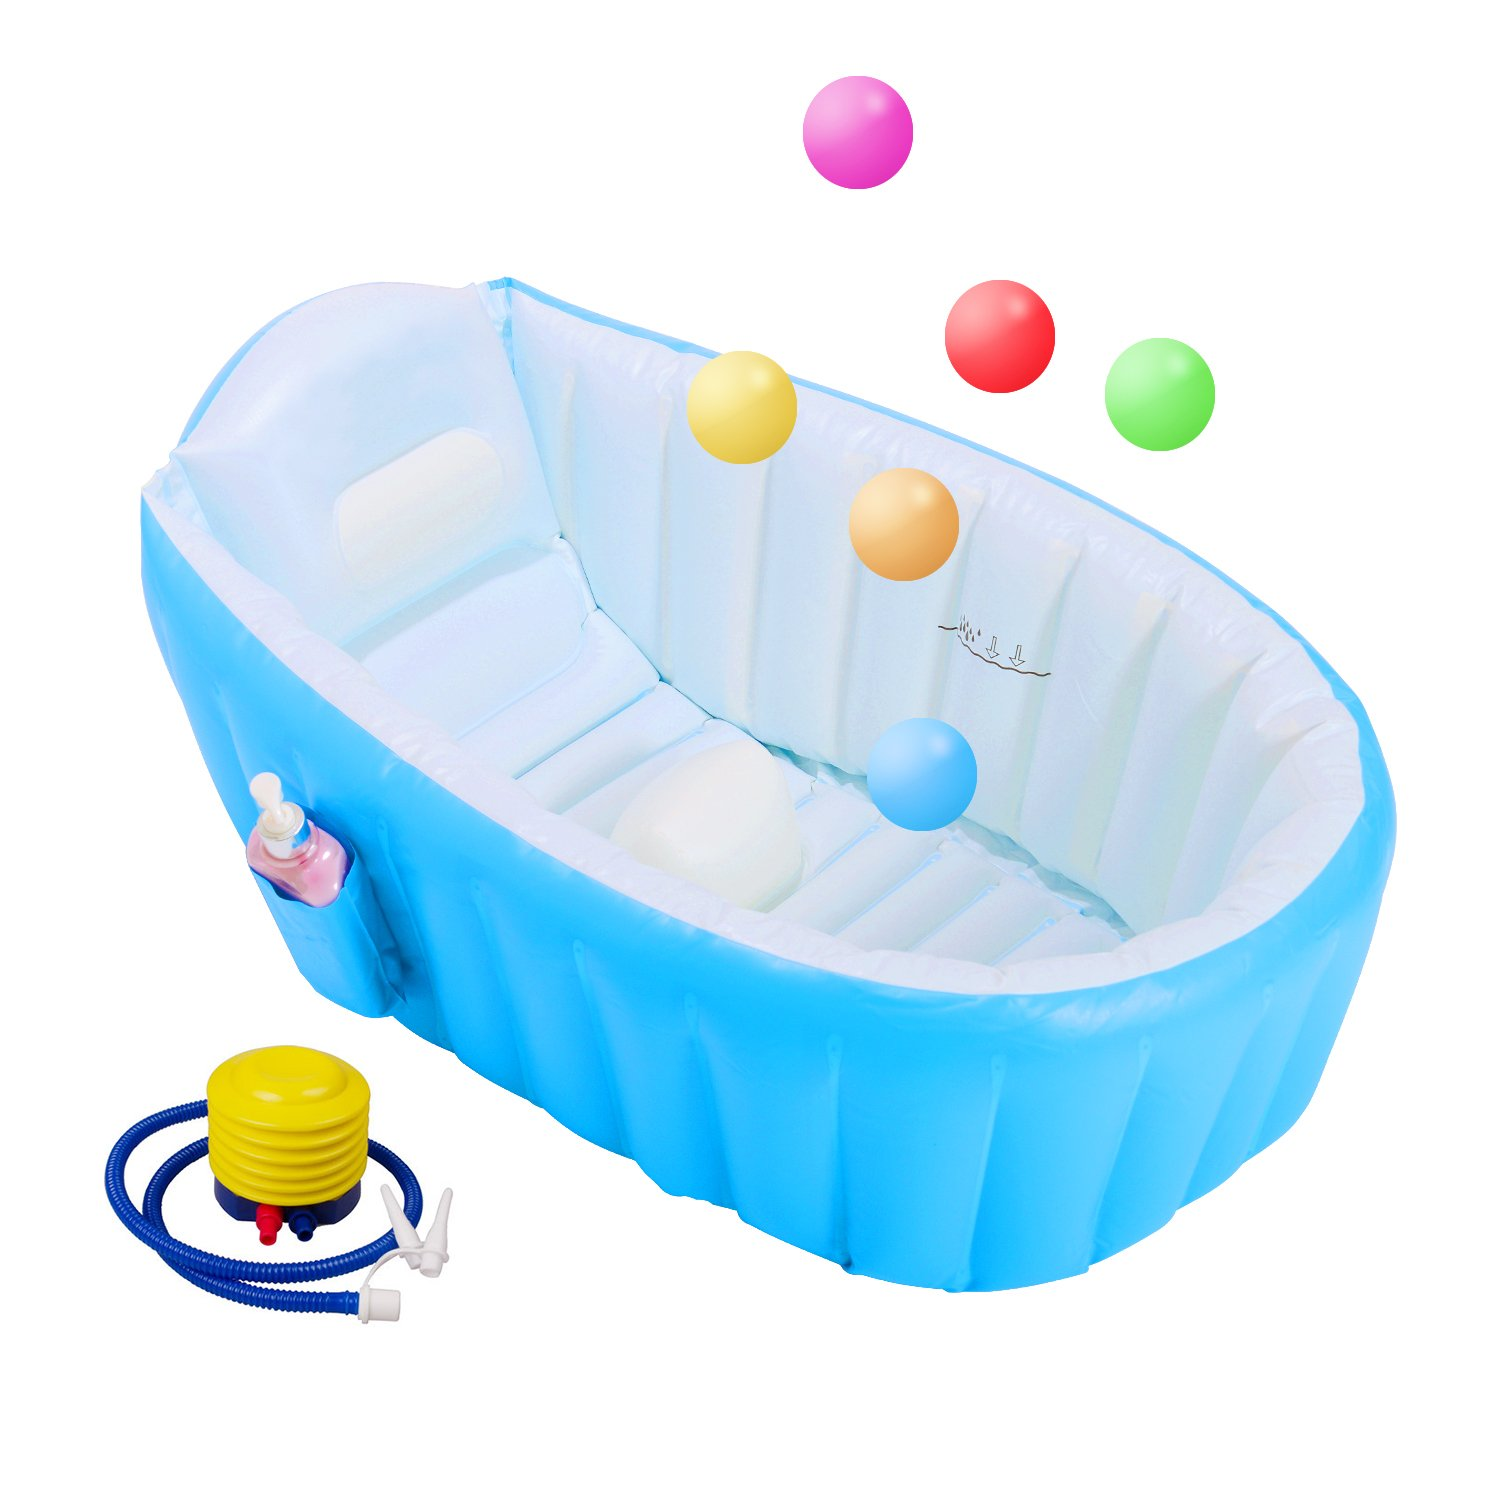 Best pool seats for babies | Amazon.com